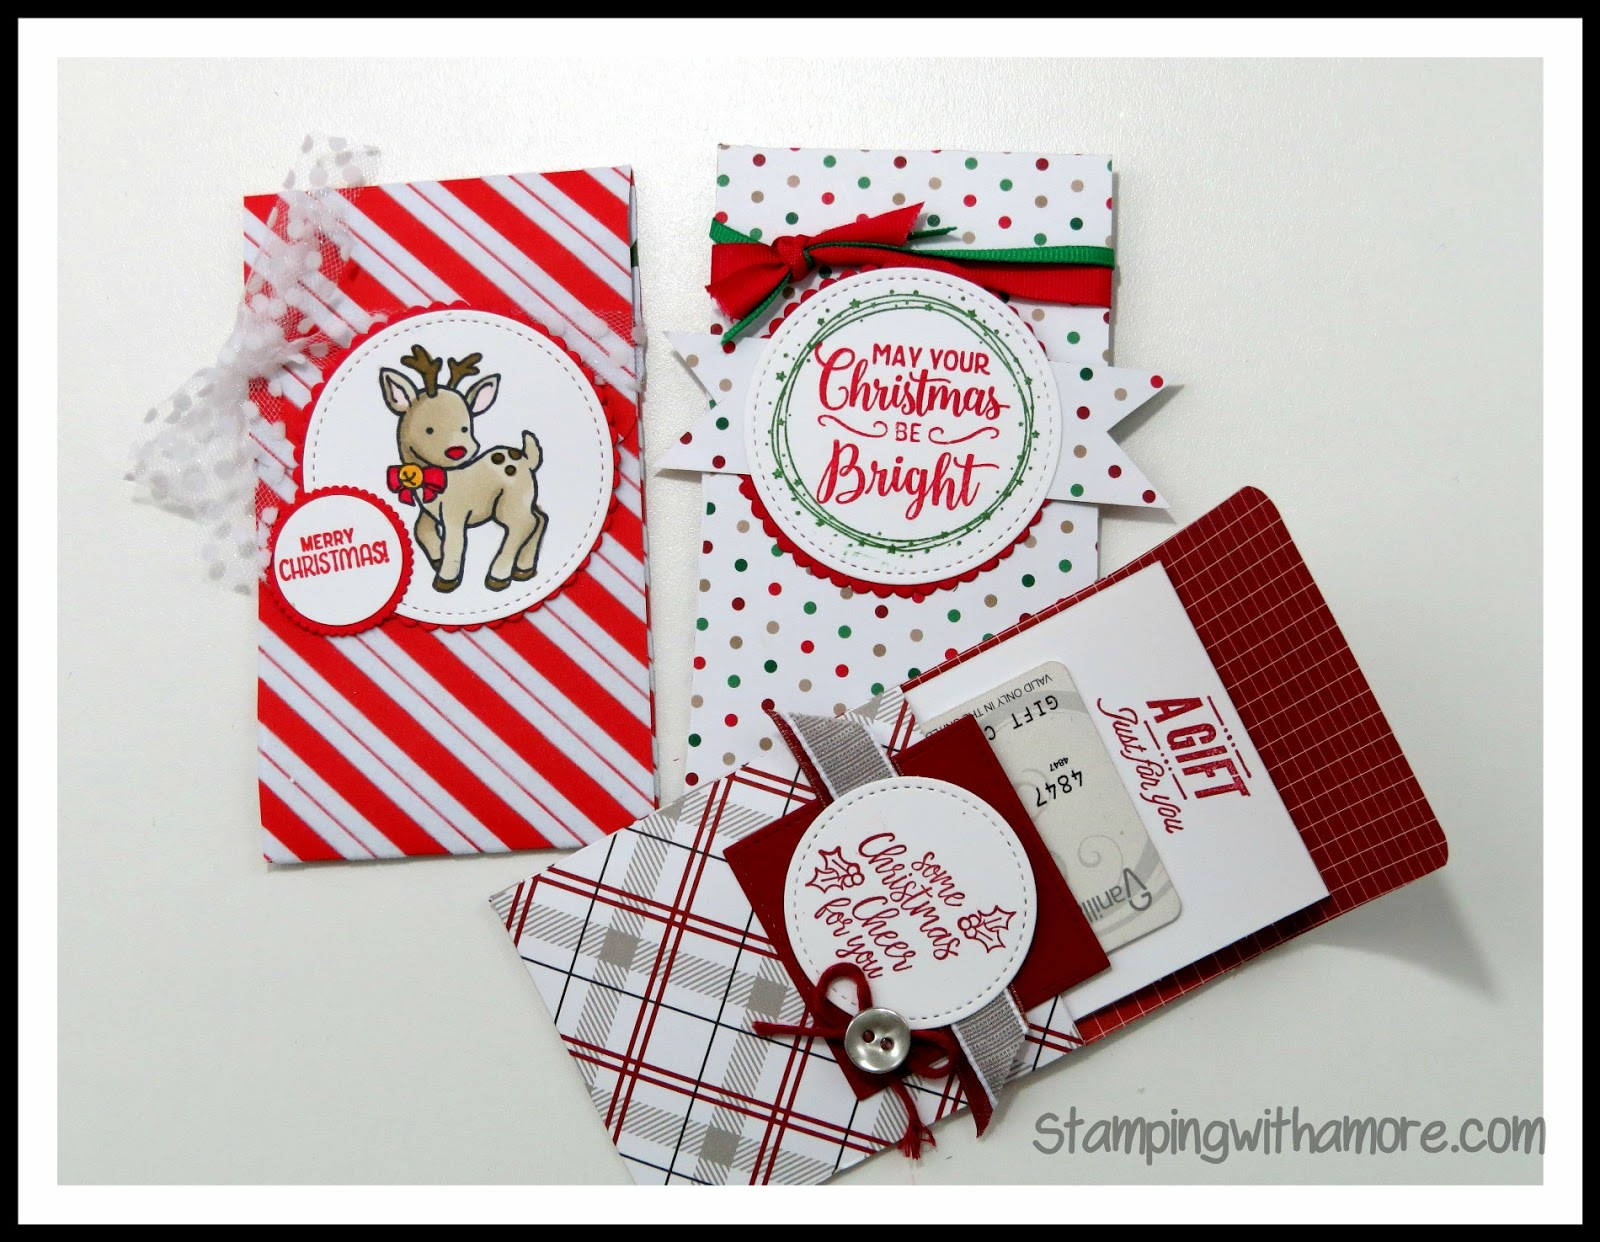 Stampingwithamore: TECHNIQUE TUESDAY PULL-OUT GIFT CARD HOLDER